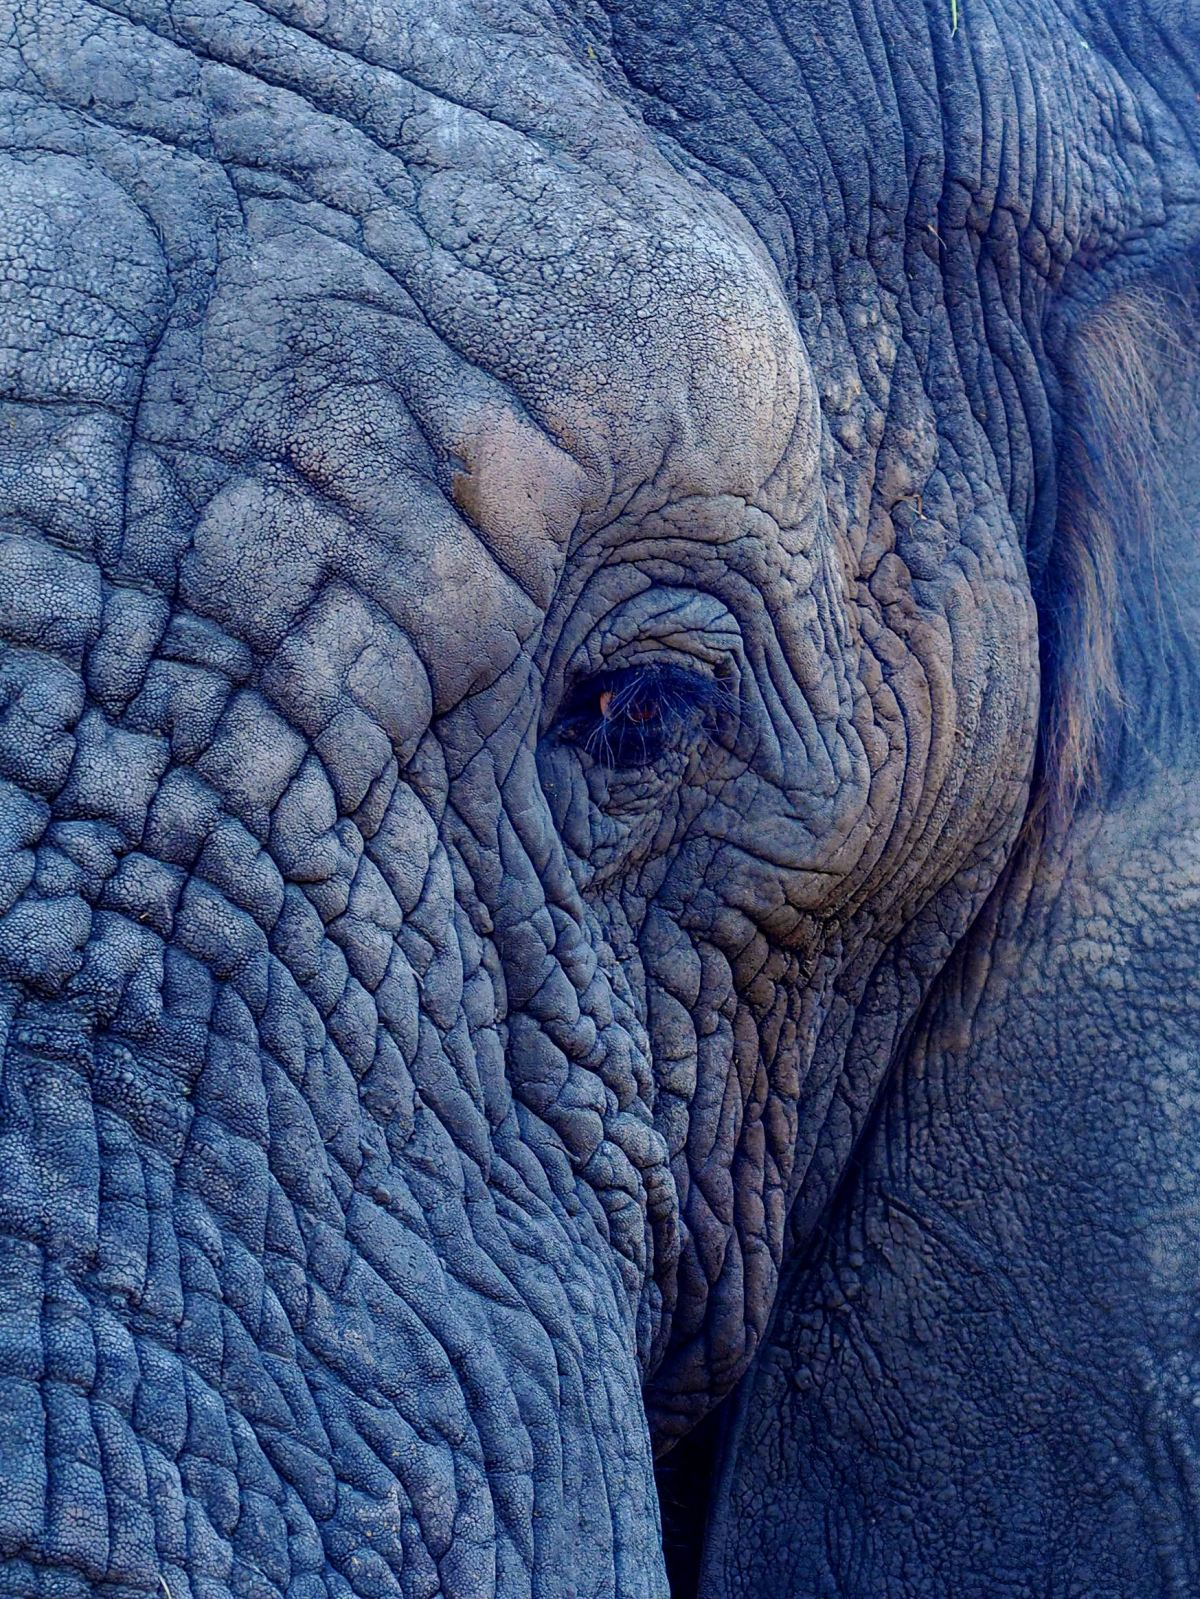 A picture of an elephants eye and part of his trunk showing wrinkled skin